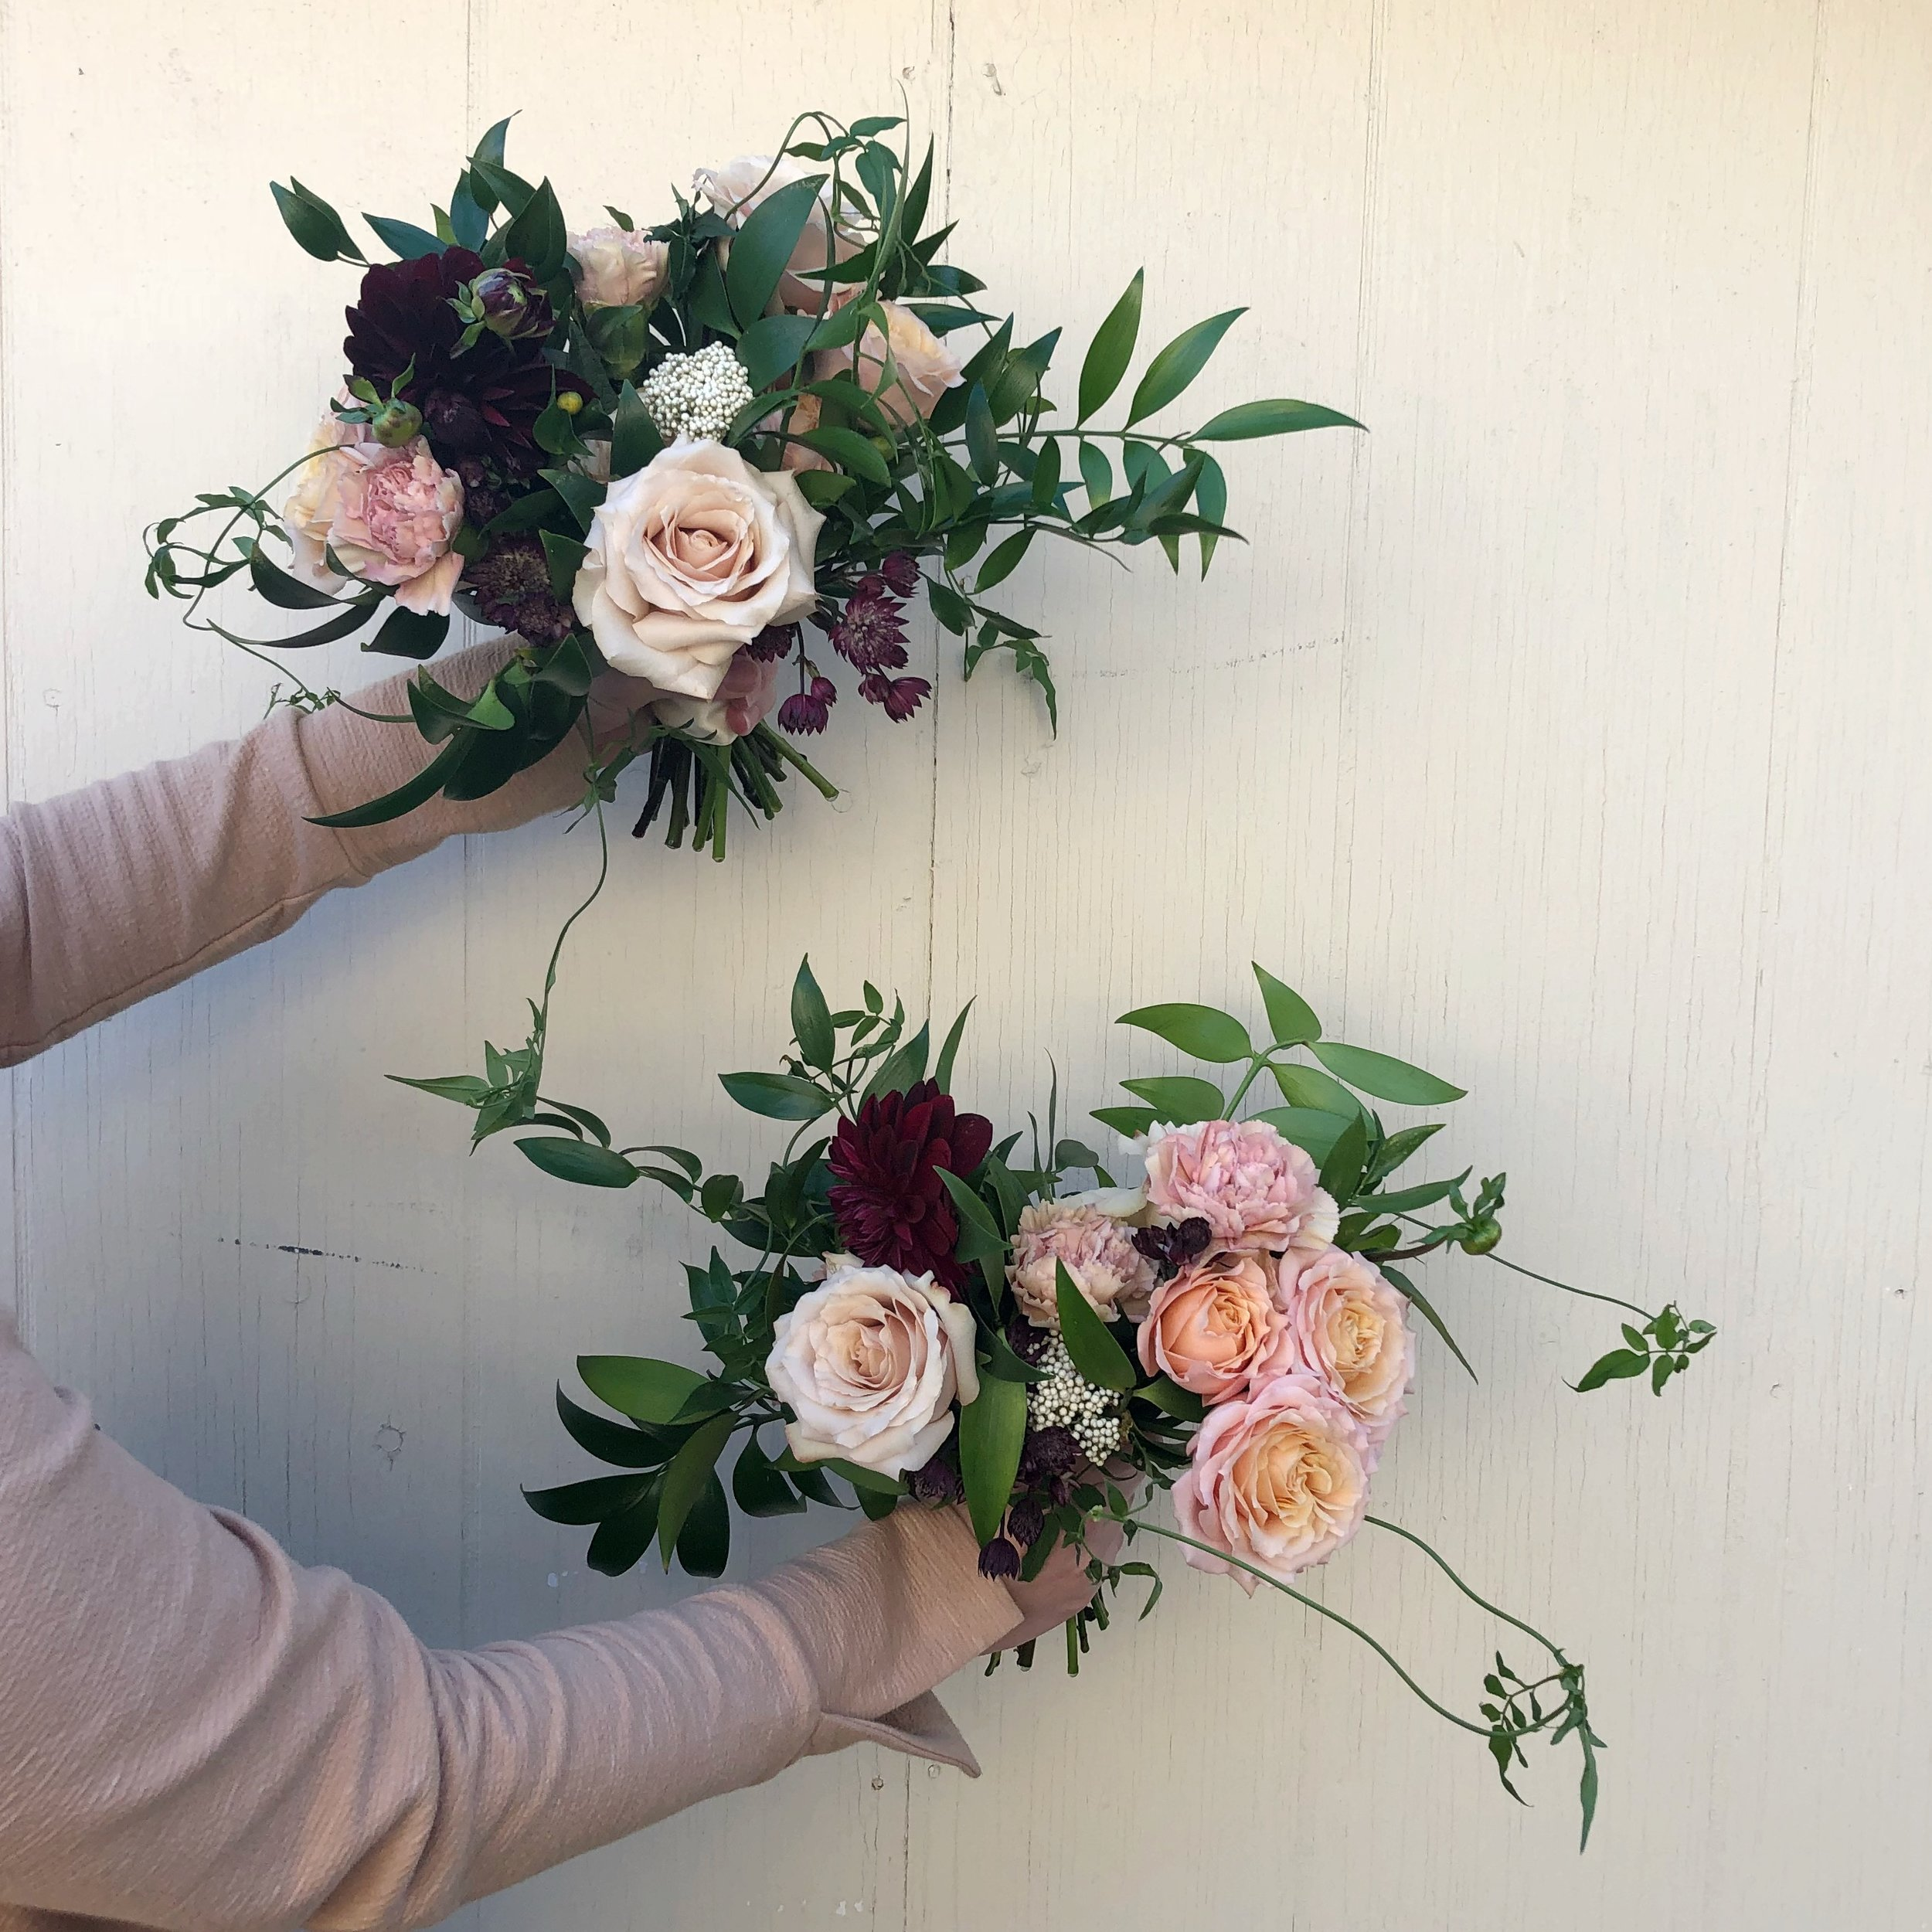 Garden Inspired Wedding Flowers in Winnipeg - Winnipeg's Best Wedding Florist